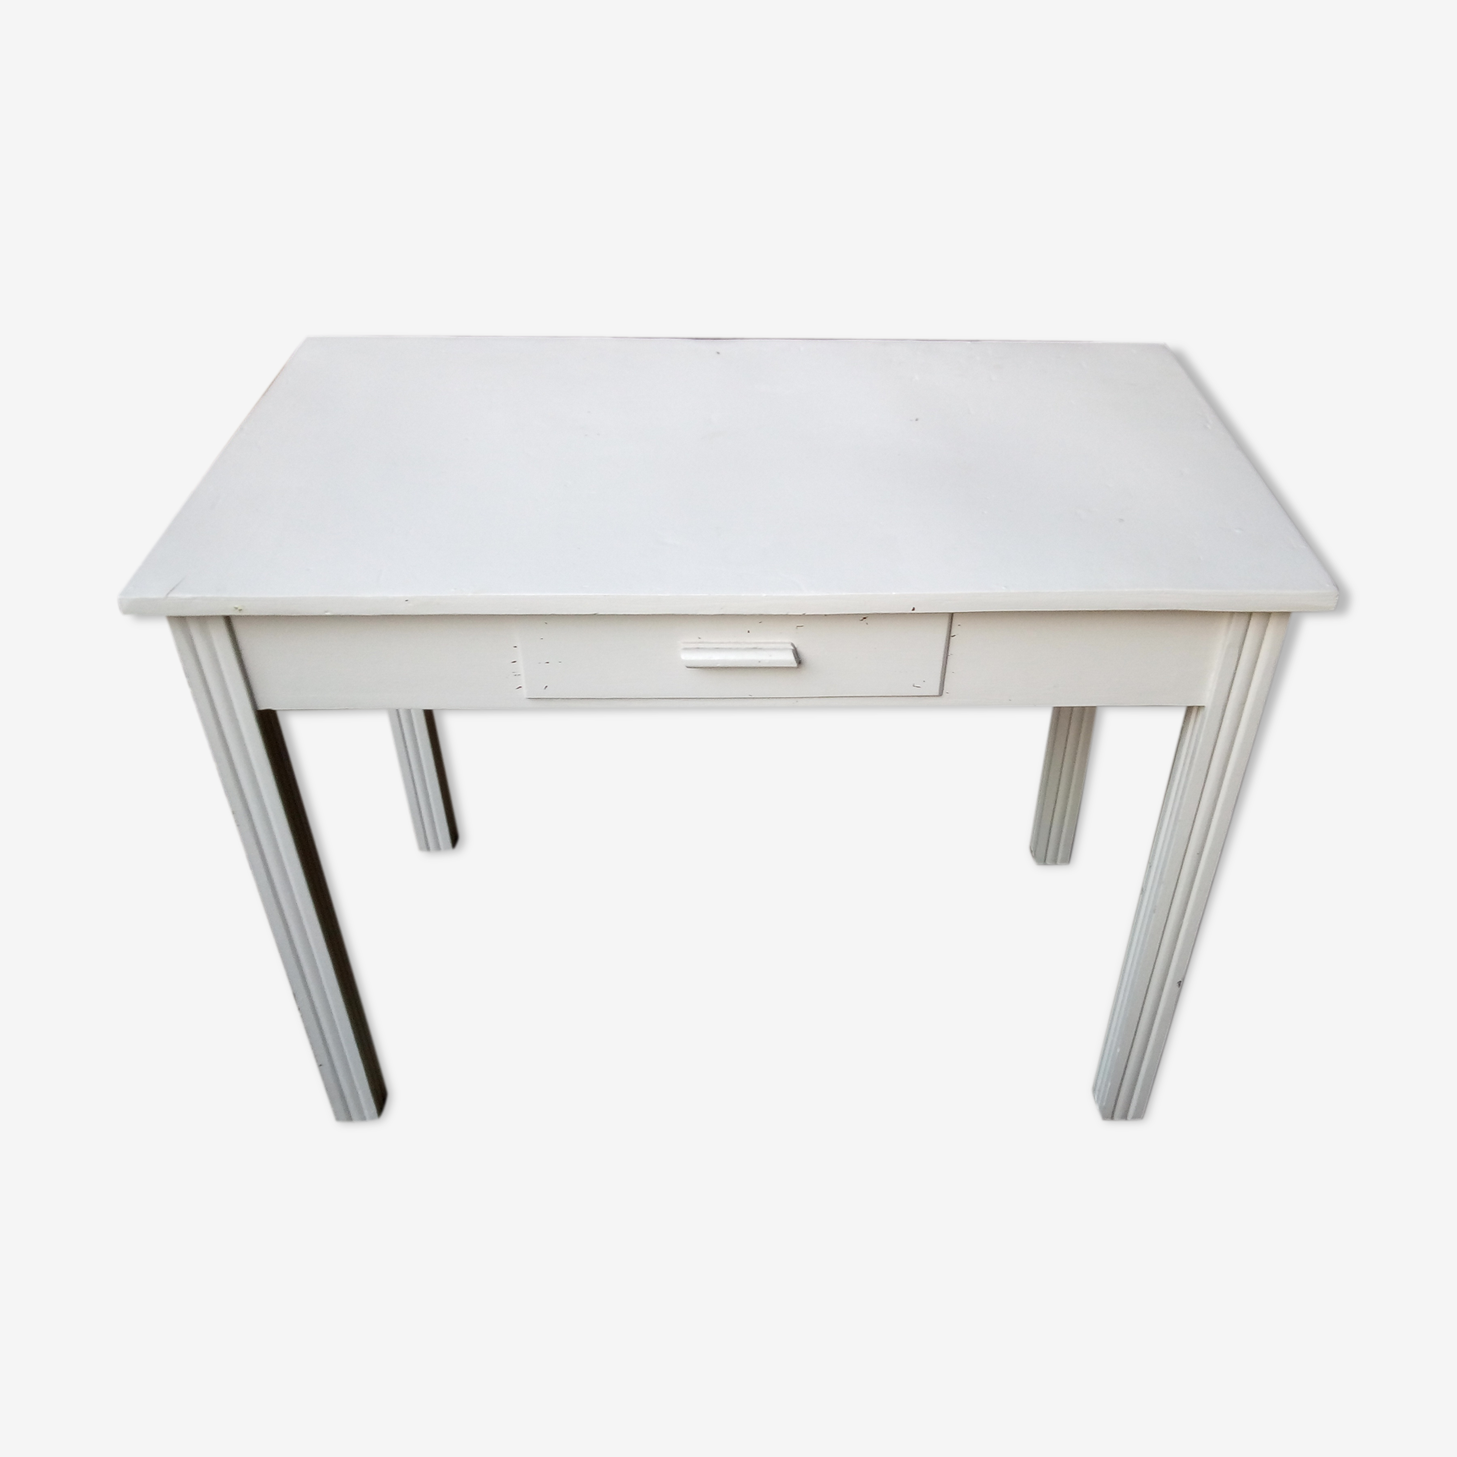 Table grey